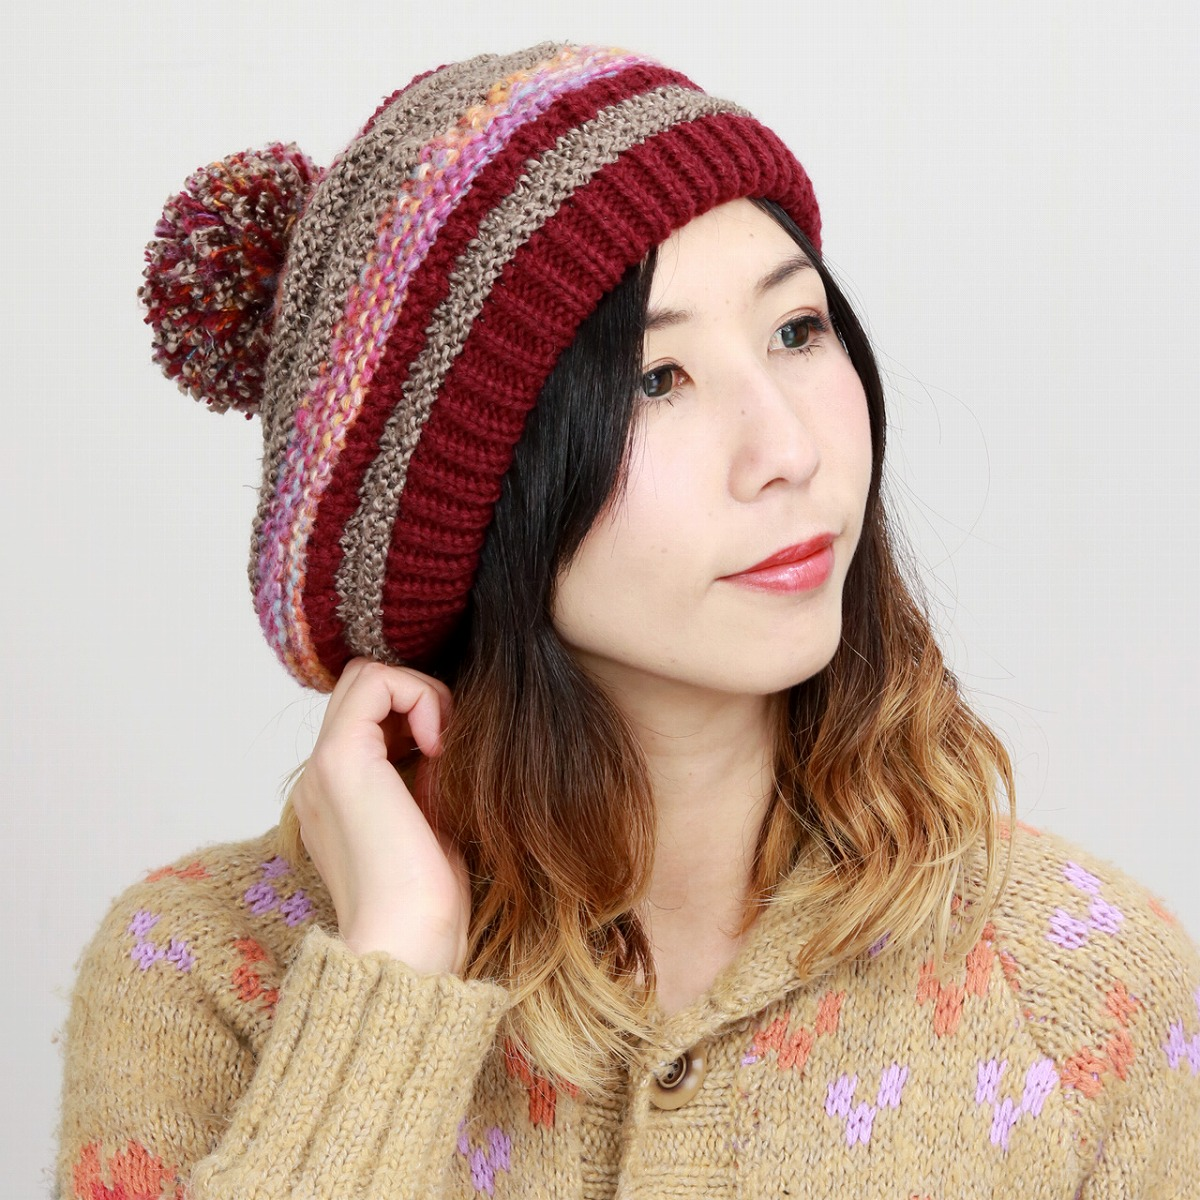 a748c8c55 It is a present Lady's hat gift grandmother present lady's knit hat  different fabrics mixture knit wine [pompom beanie] which beret 3 material  knit ...